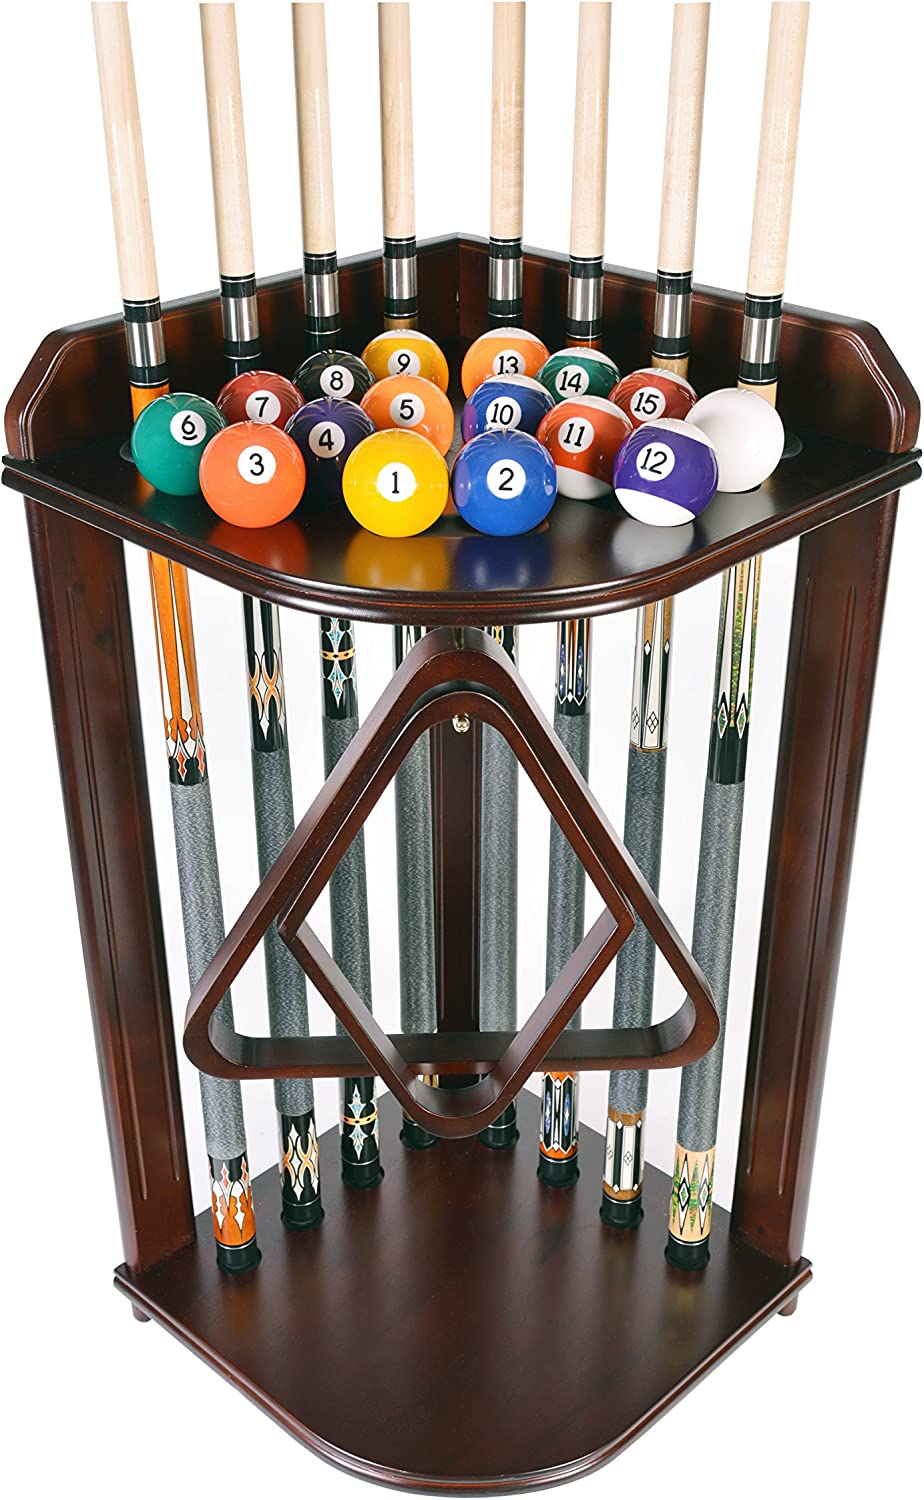 Snooker Pool Cue Rack Vogvigo Cue Rack Only 8 Pool Billiard Stick /& Ball Floor Stand Billiard Cue Holder 8 Holes